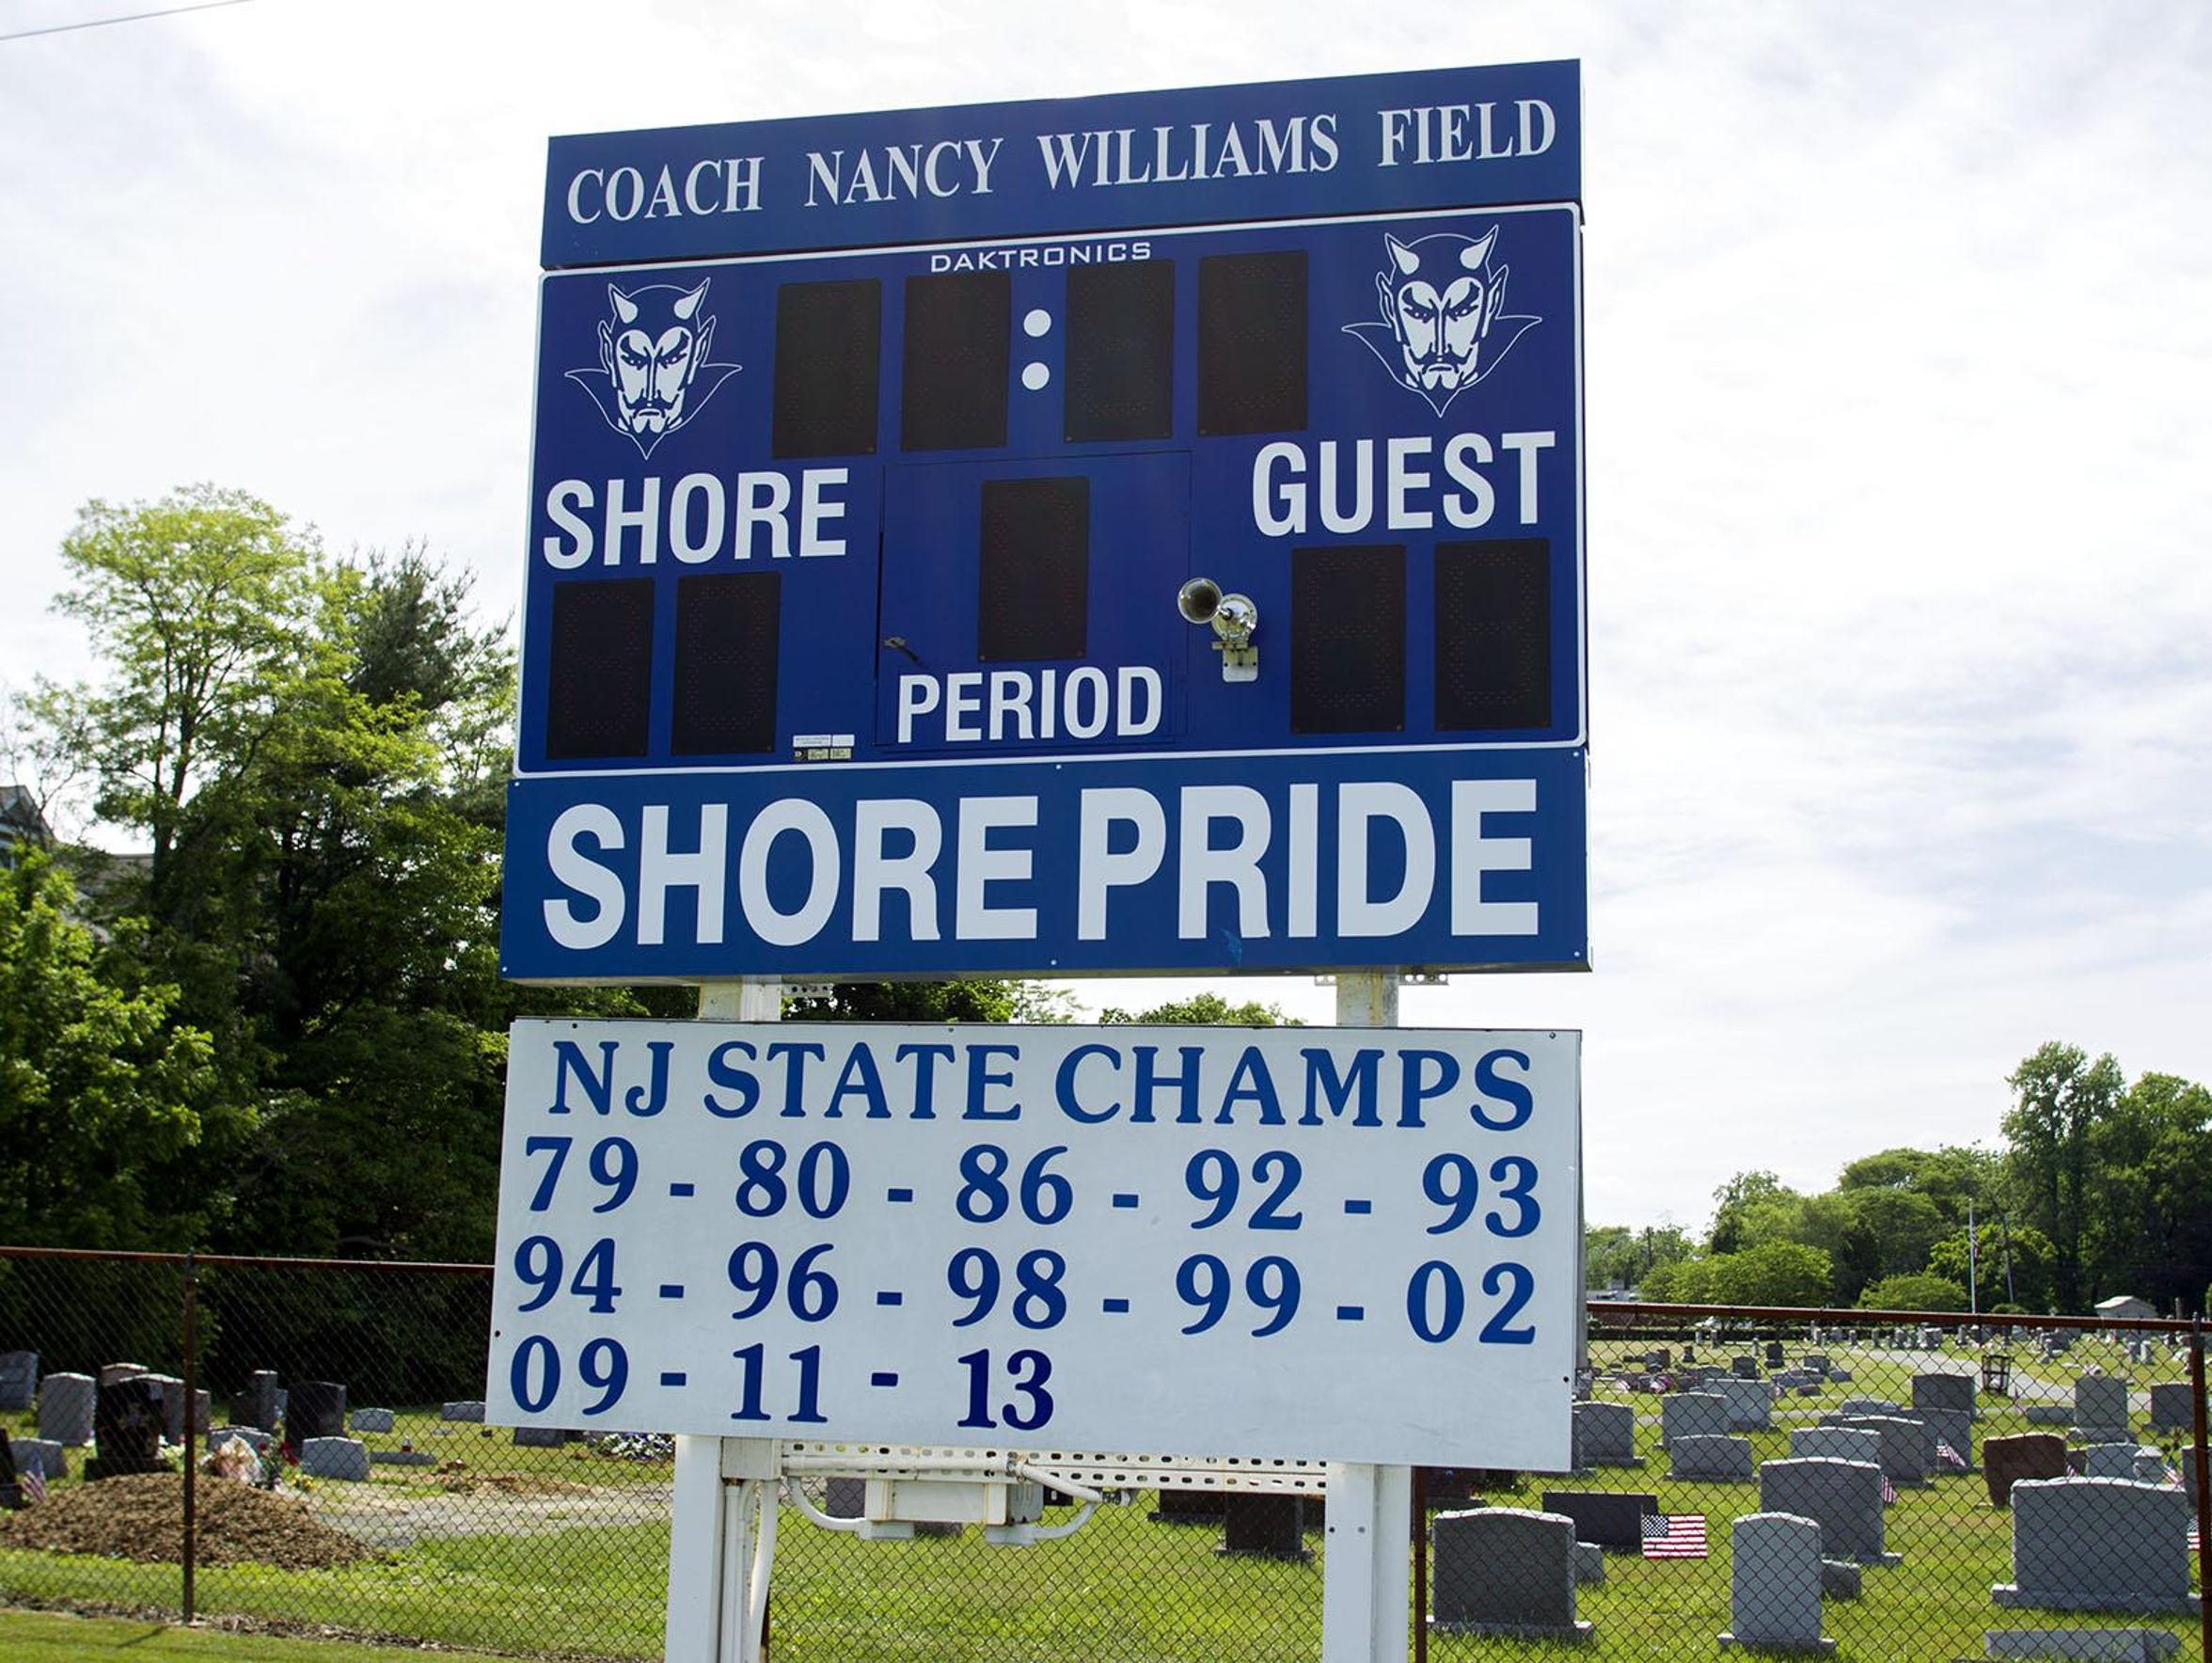 A look at the scoreboard at Shore Regional, which documents